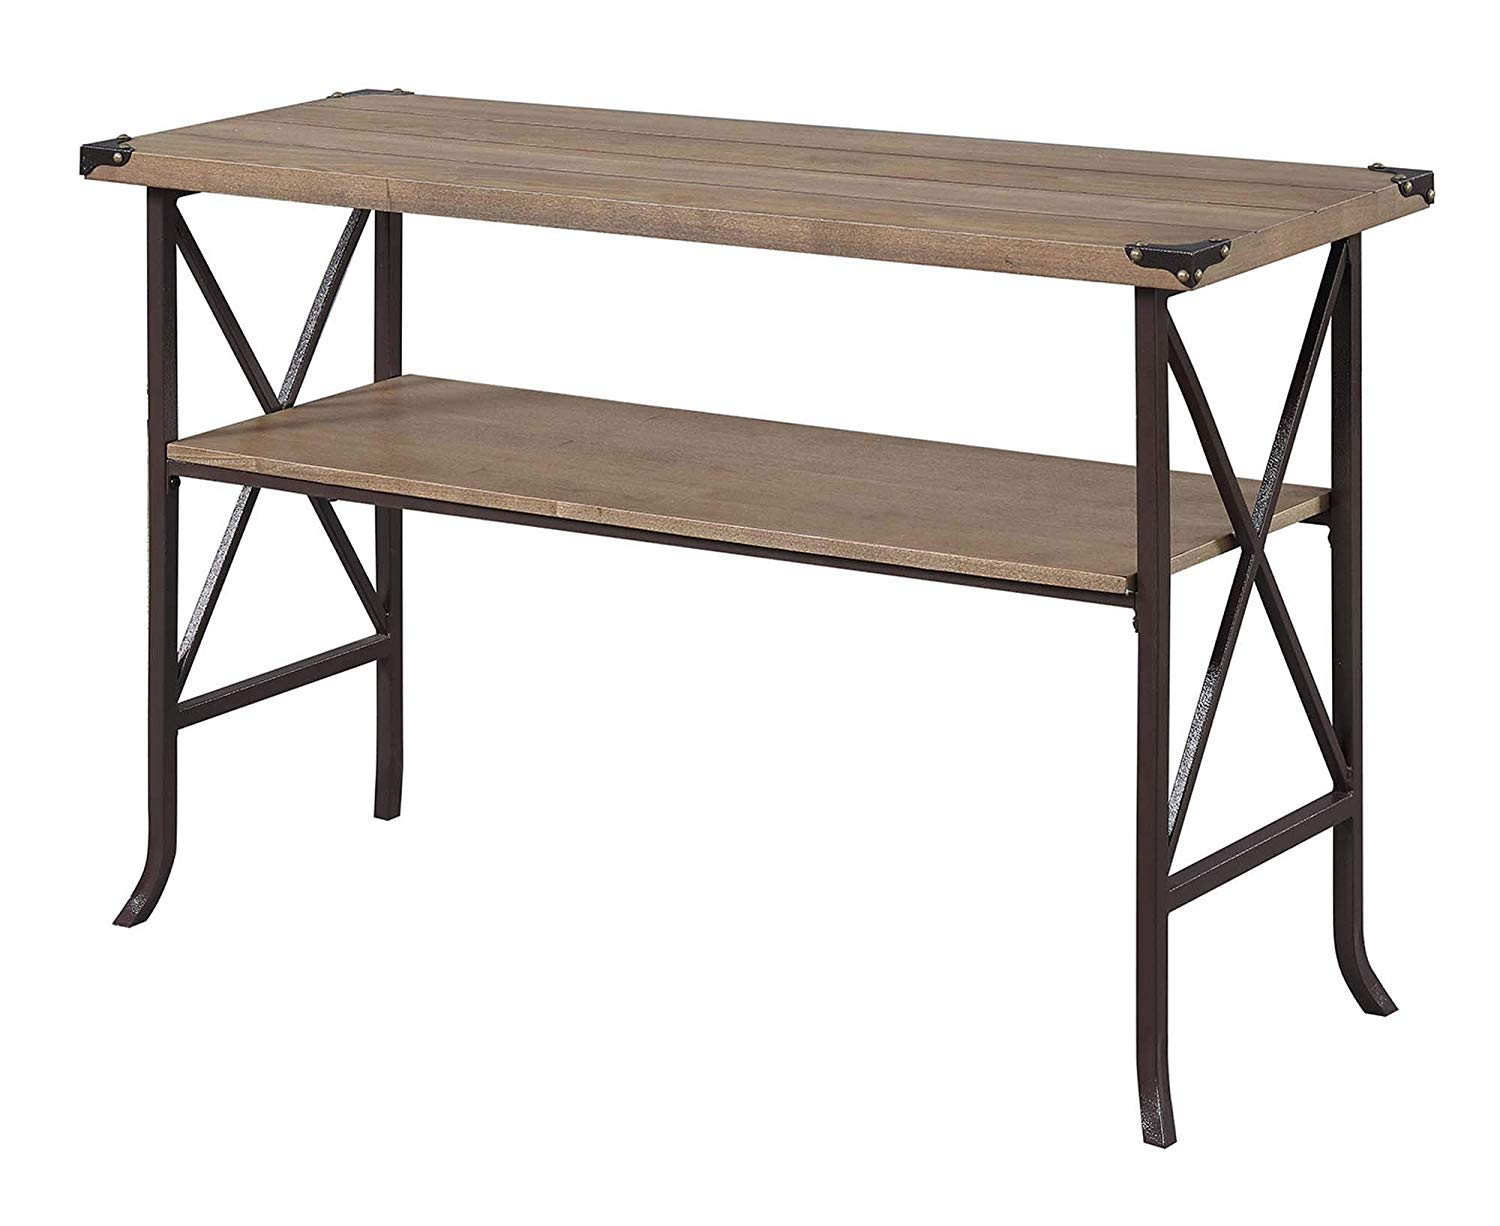 Convenience Concepts Brookline Console Table, Driftwood/Brown Frame by Convenience Concepts